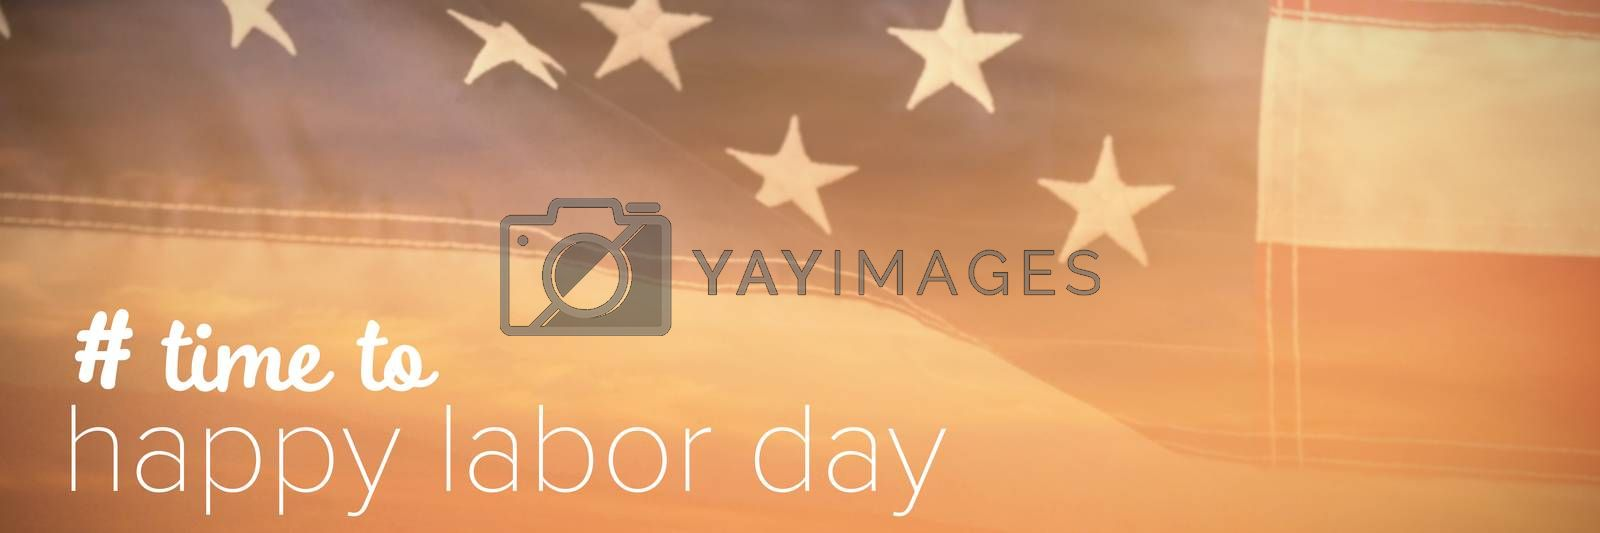 Composite image of digital composite image of time to happy labor day text by Wavebreakmedia